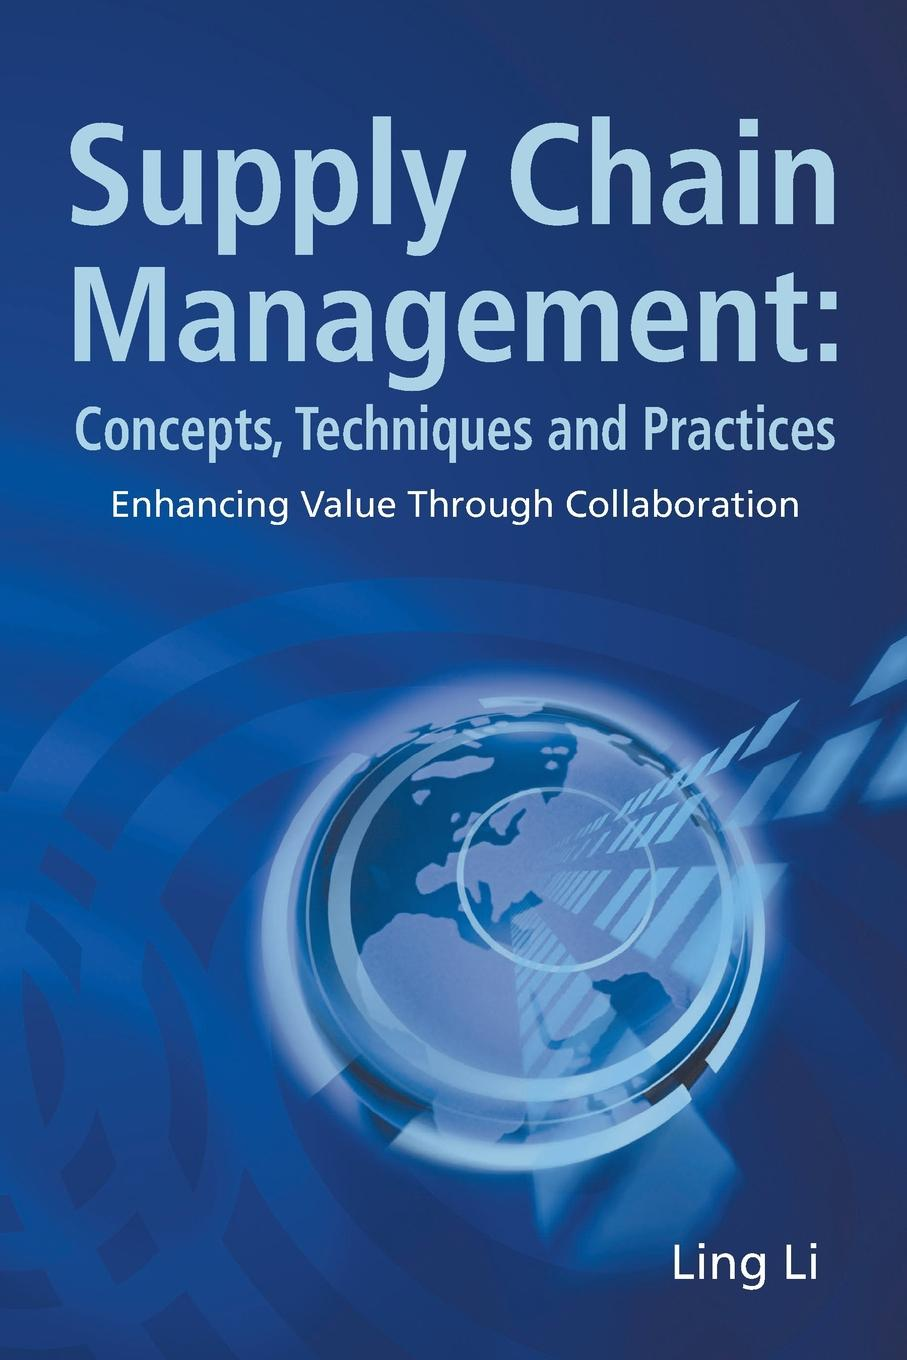 Ling Li SUPPLY CHAIN MANAGEMENT. CONCEPTS, TECHNIQUES AND PRACTICES: ENHANCING THE VALUE THROUGH COLLABORATION georg baltes new perspectives on supply and distribution chain financing case studies from china and europe